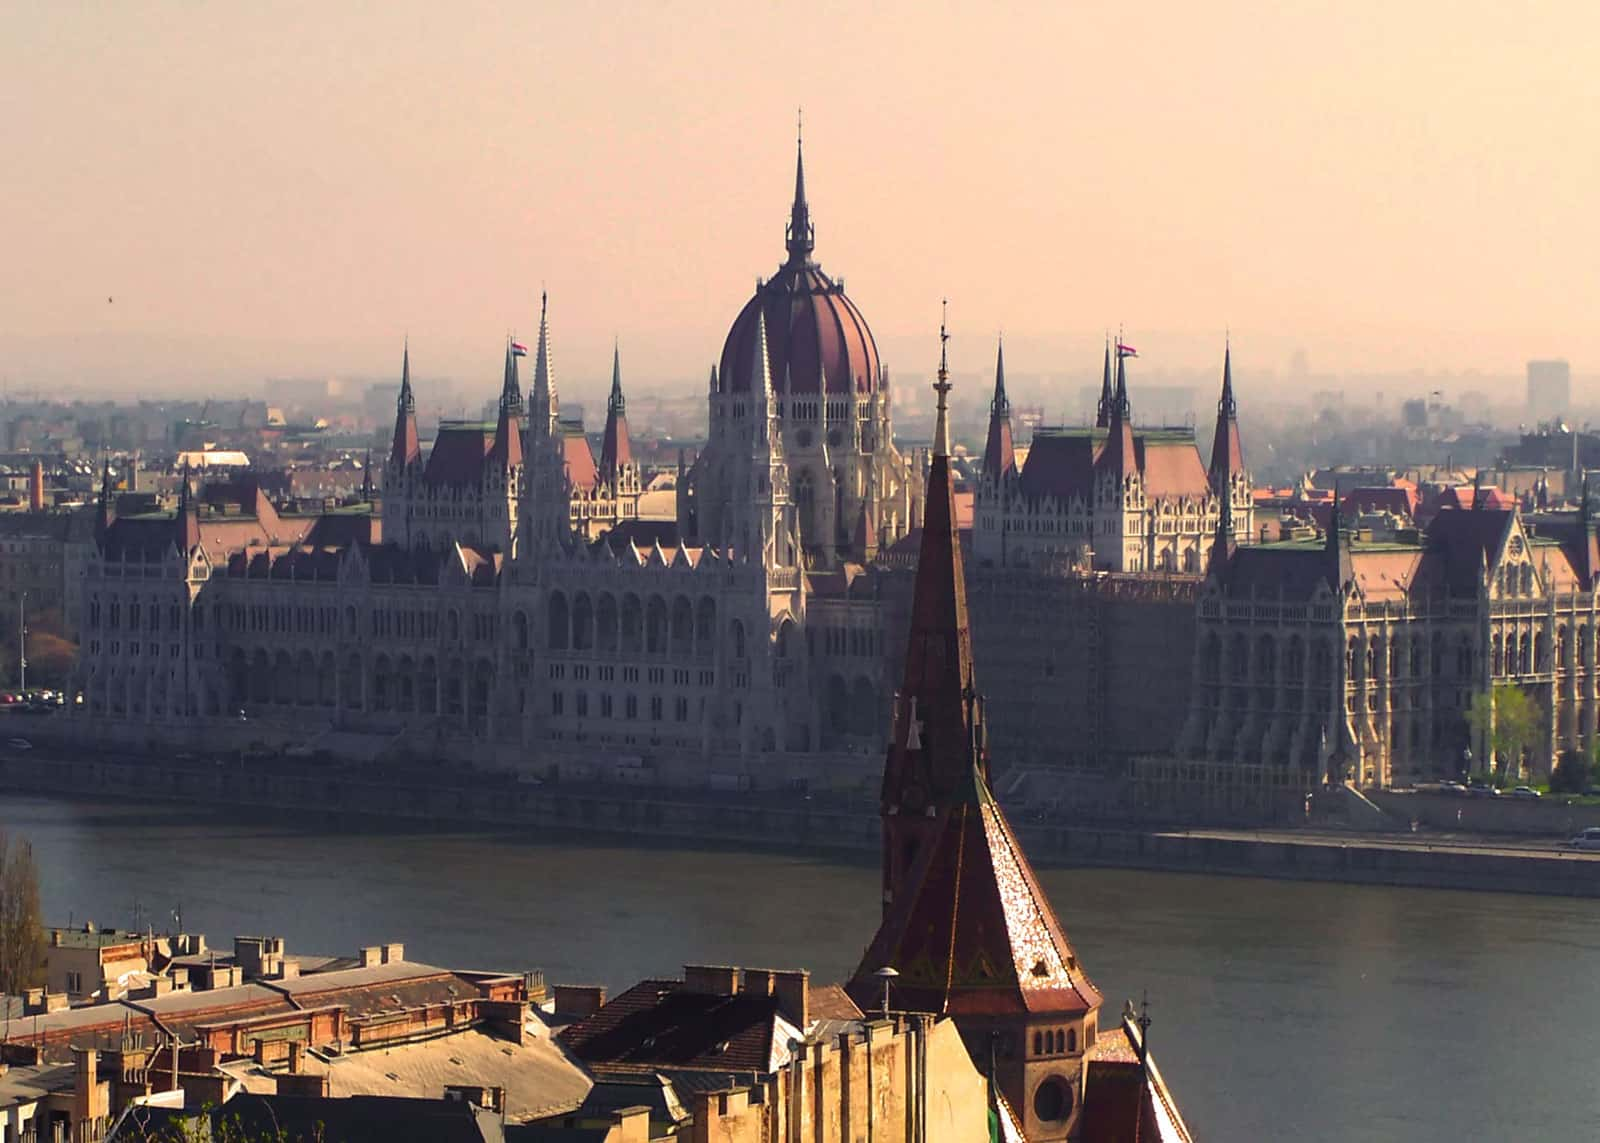 Sunsetting over Hungarian Parliament in Budapest, Hungary